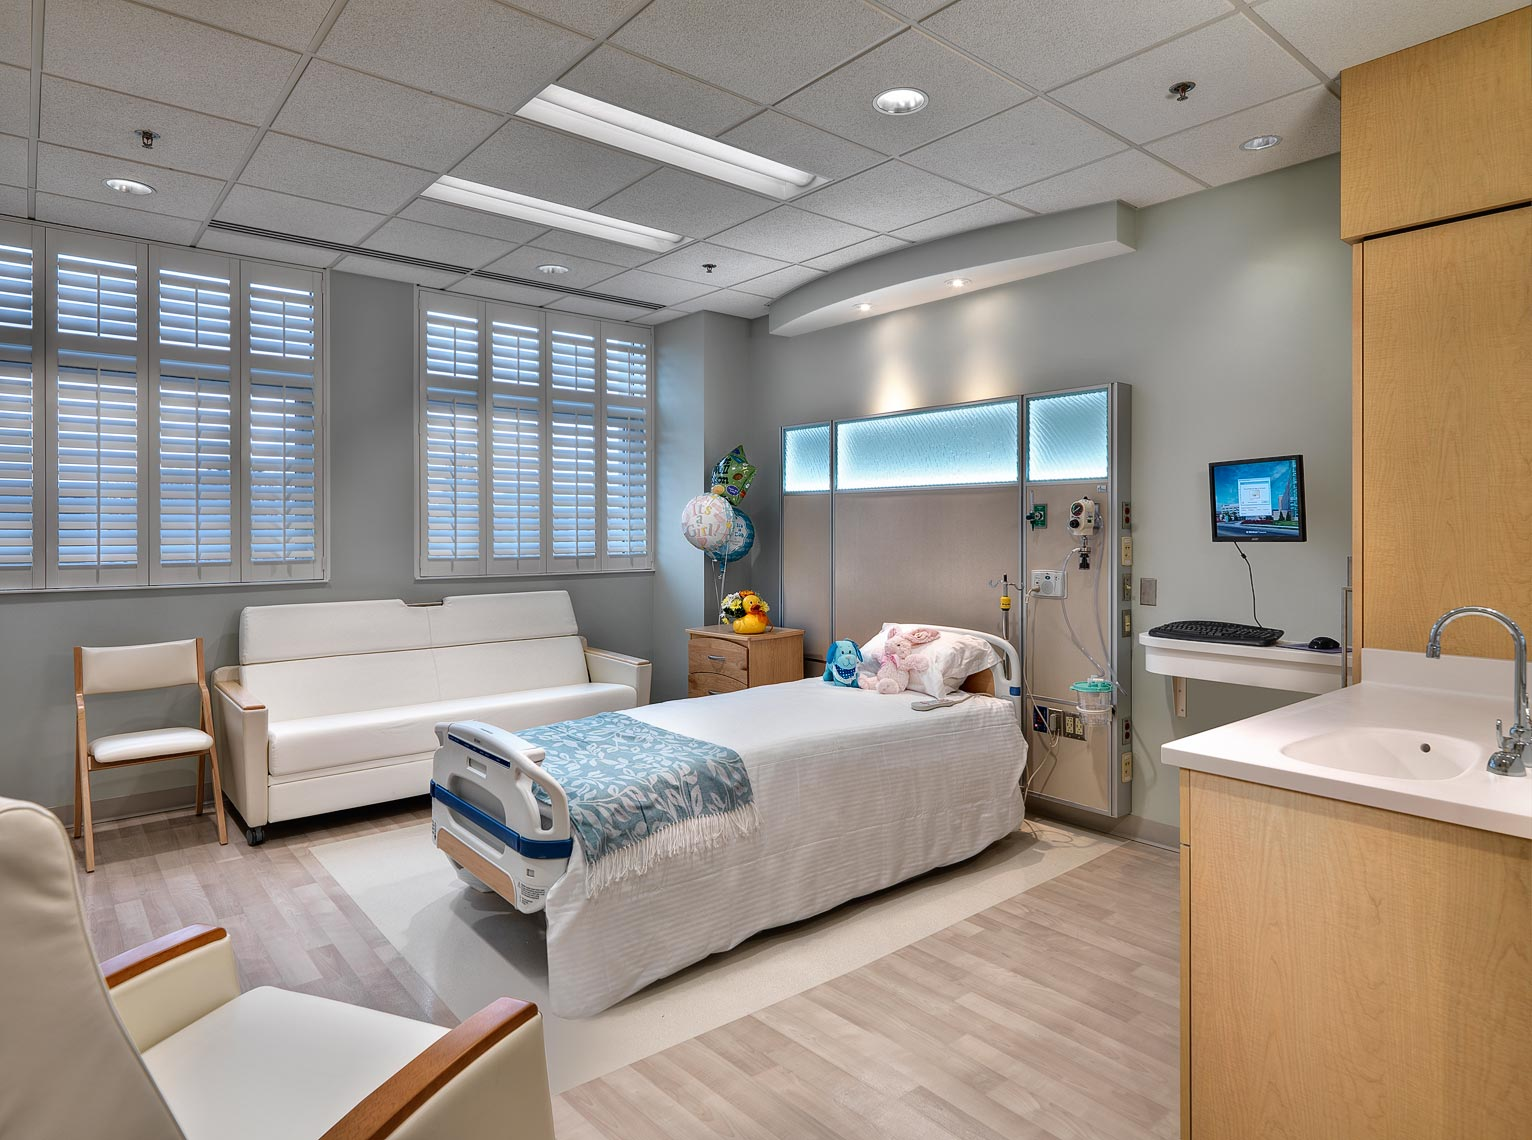 Firelands Medical Center | Maylone Architectural Photo